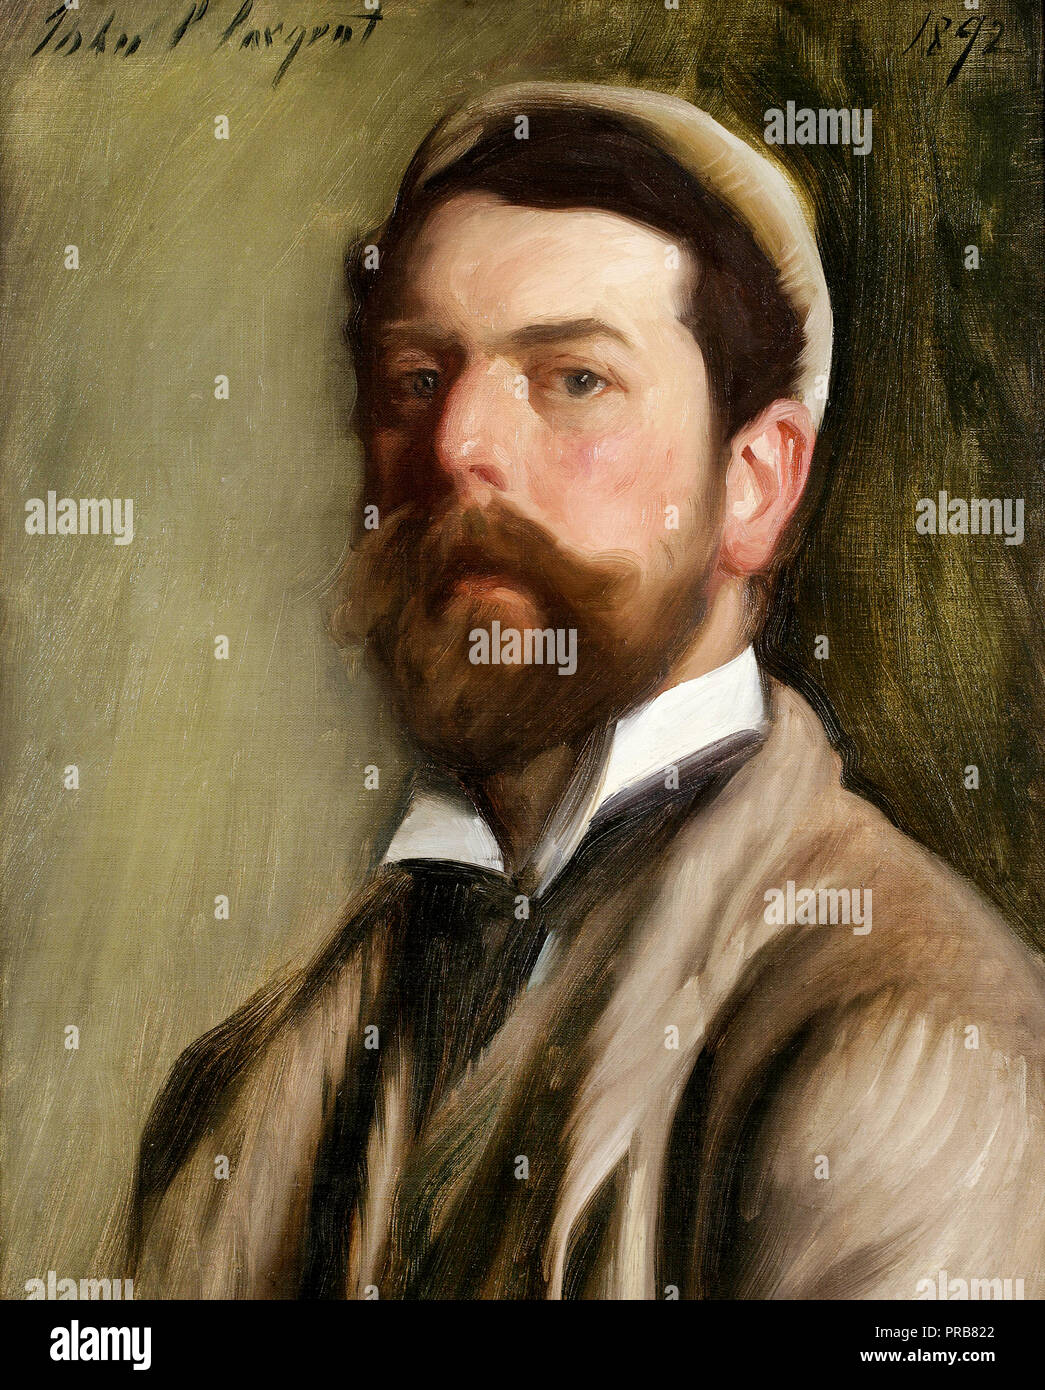 John Singer Sargent, Self-portrait 1892 Oil on canvas, National Academy Museum and School, New York, USA. - Stock Image